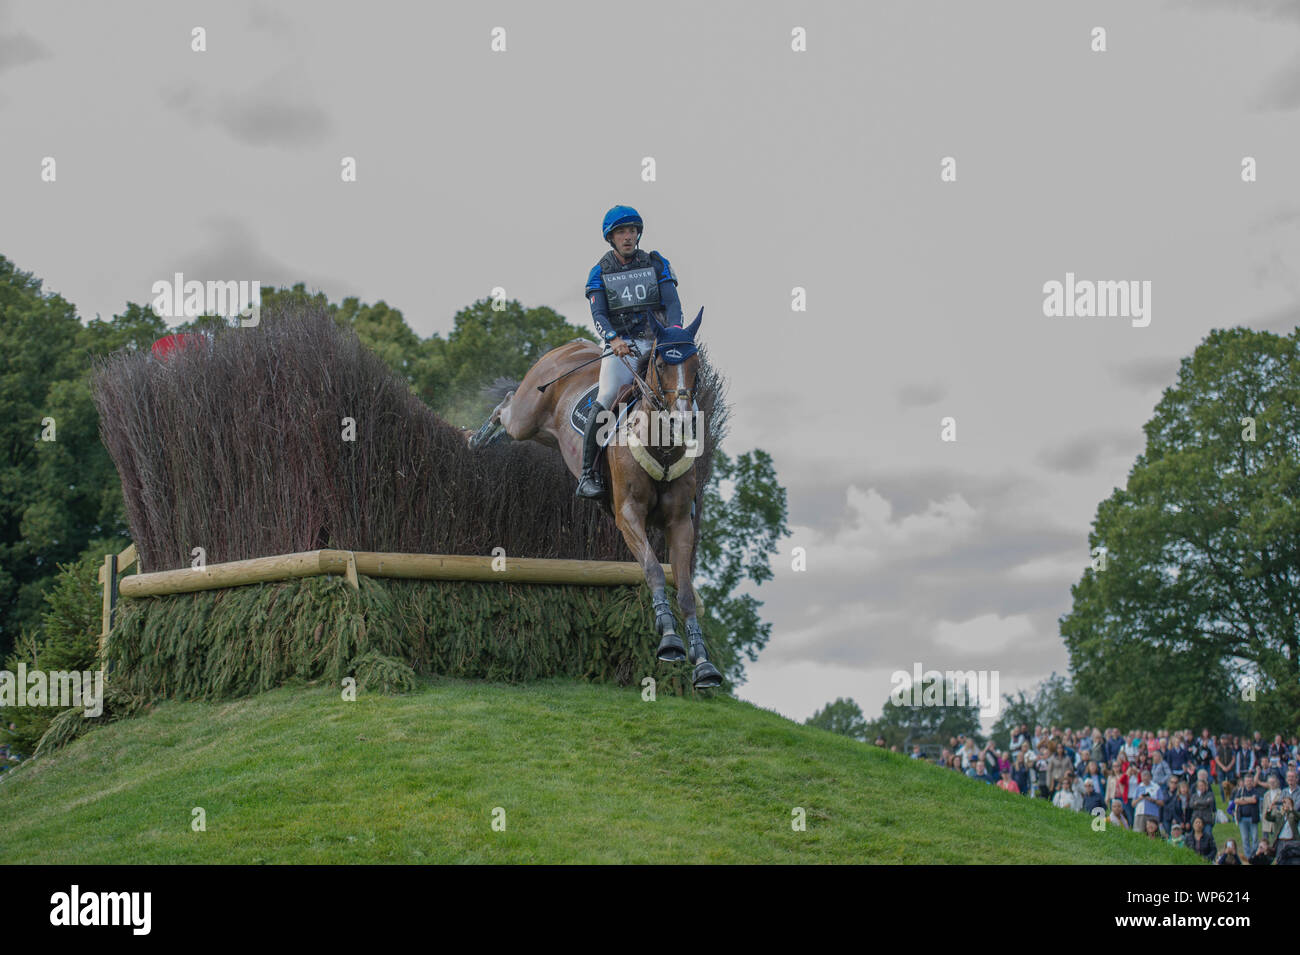 Stamford, UK, Saturday 7th September, 2019. Sebastien Cavaillon riding Sarah D'argouges during the Land Rover Burghley Horse Trials,  Cross Country phase. © Julie Priestley/Alamy Live News Stock Photo